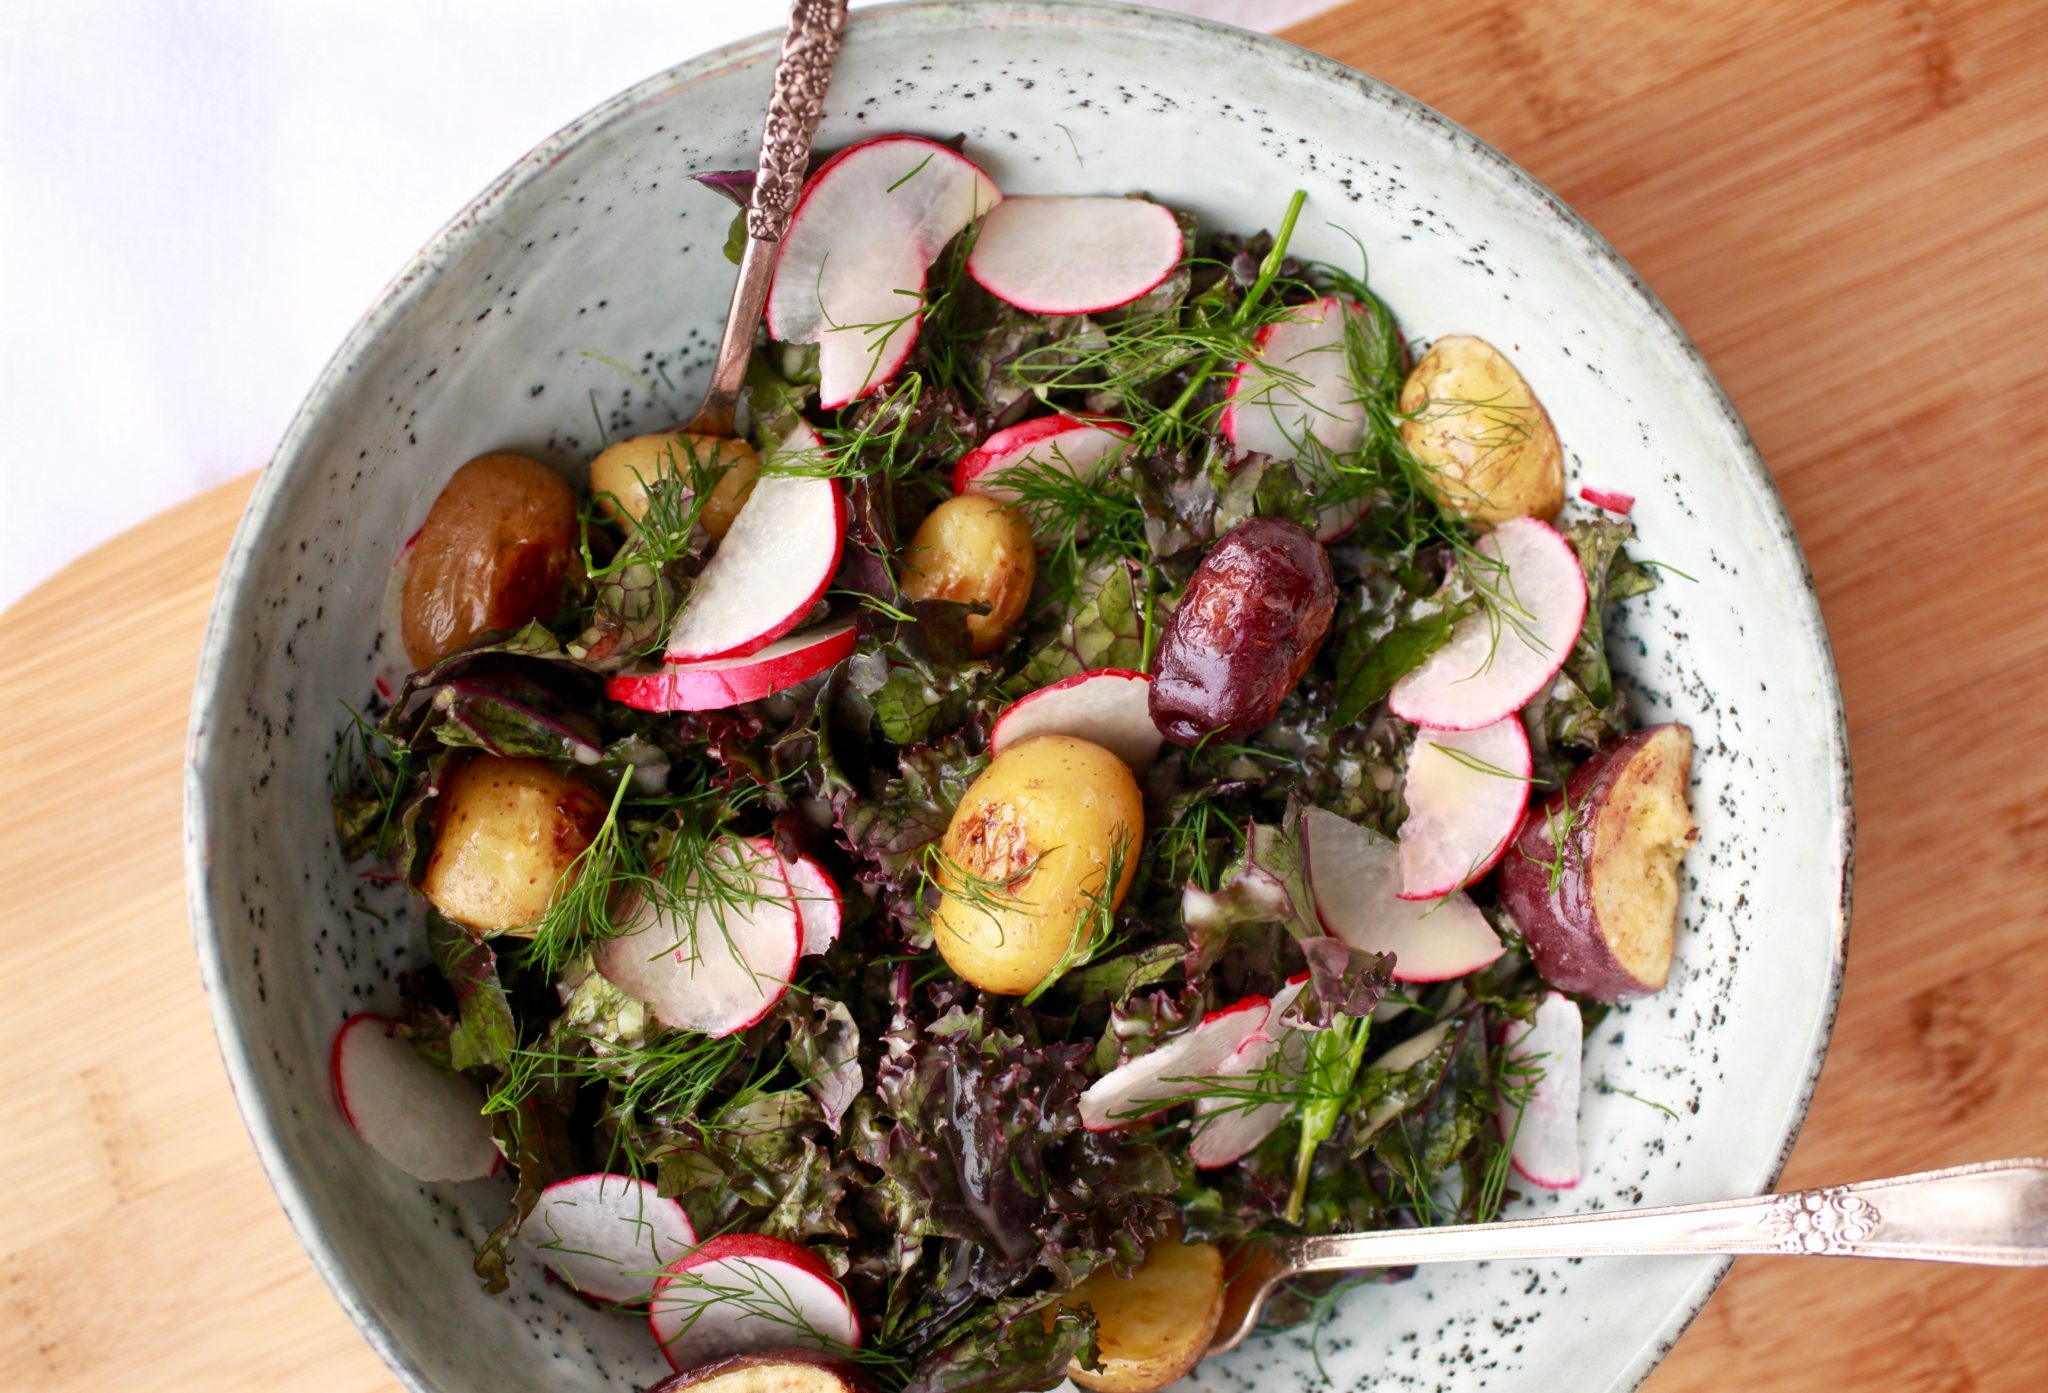 Red Kale and Potato Salad with Lemon Maple Dijon Dressing - The Little Potato Company